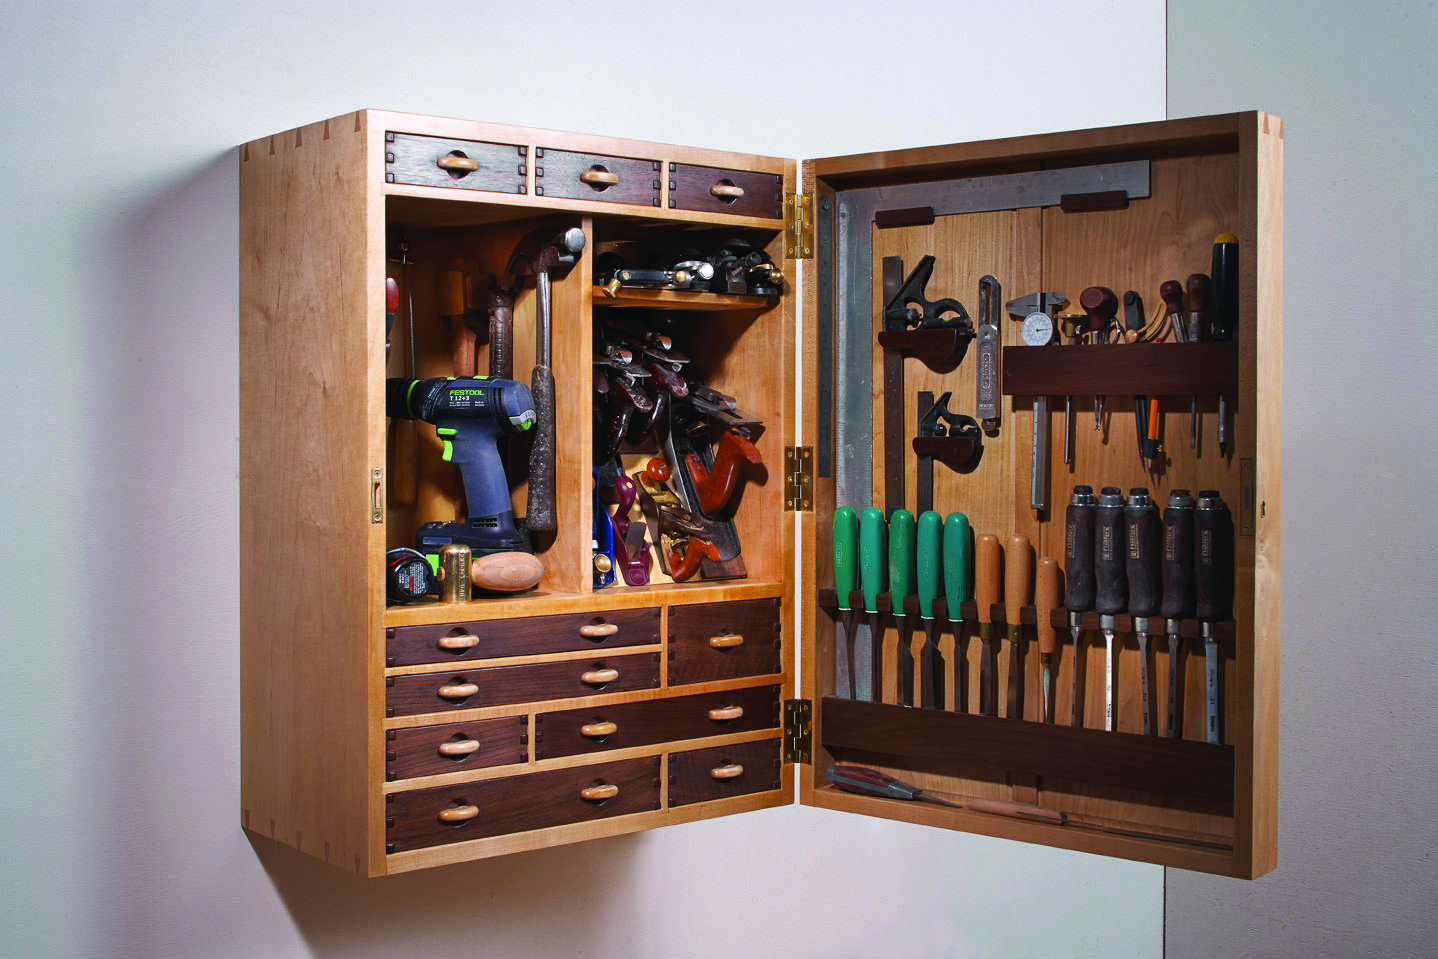 A classic form from the New Lebanon Shaker community is easy to build in a few hours. By Christopher Schwarz Page 48-49 & Shaker Wall Cupboard - Popular Woodworking Magazine